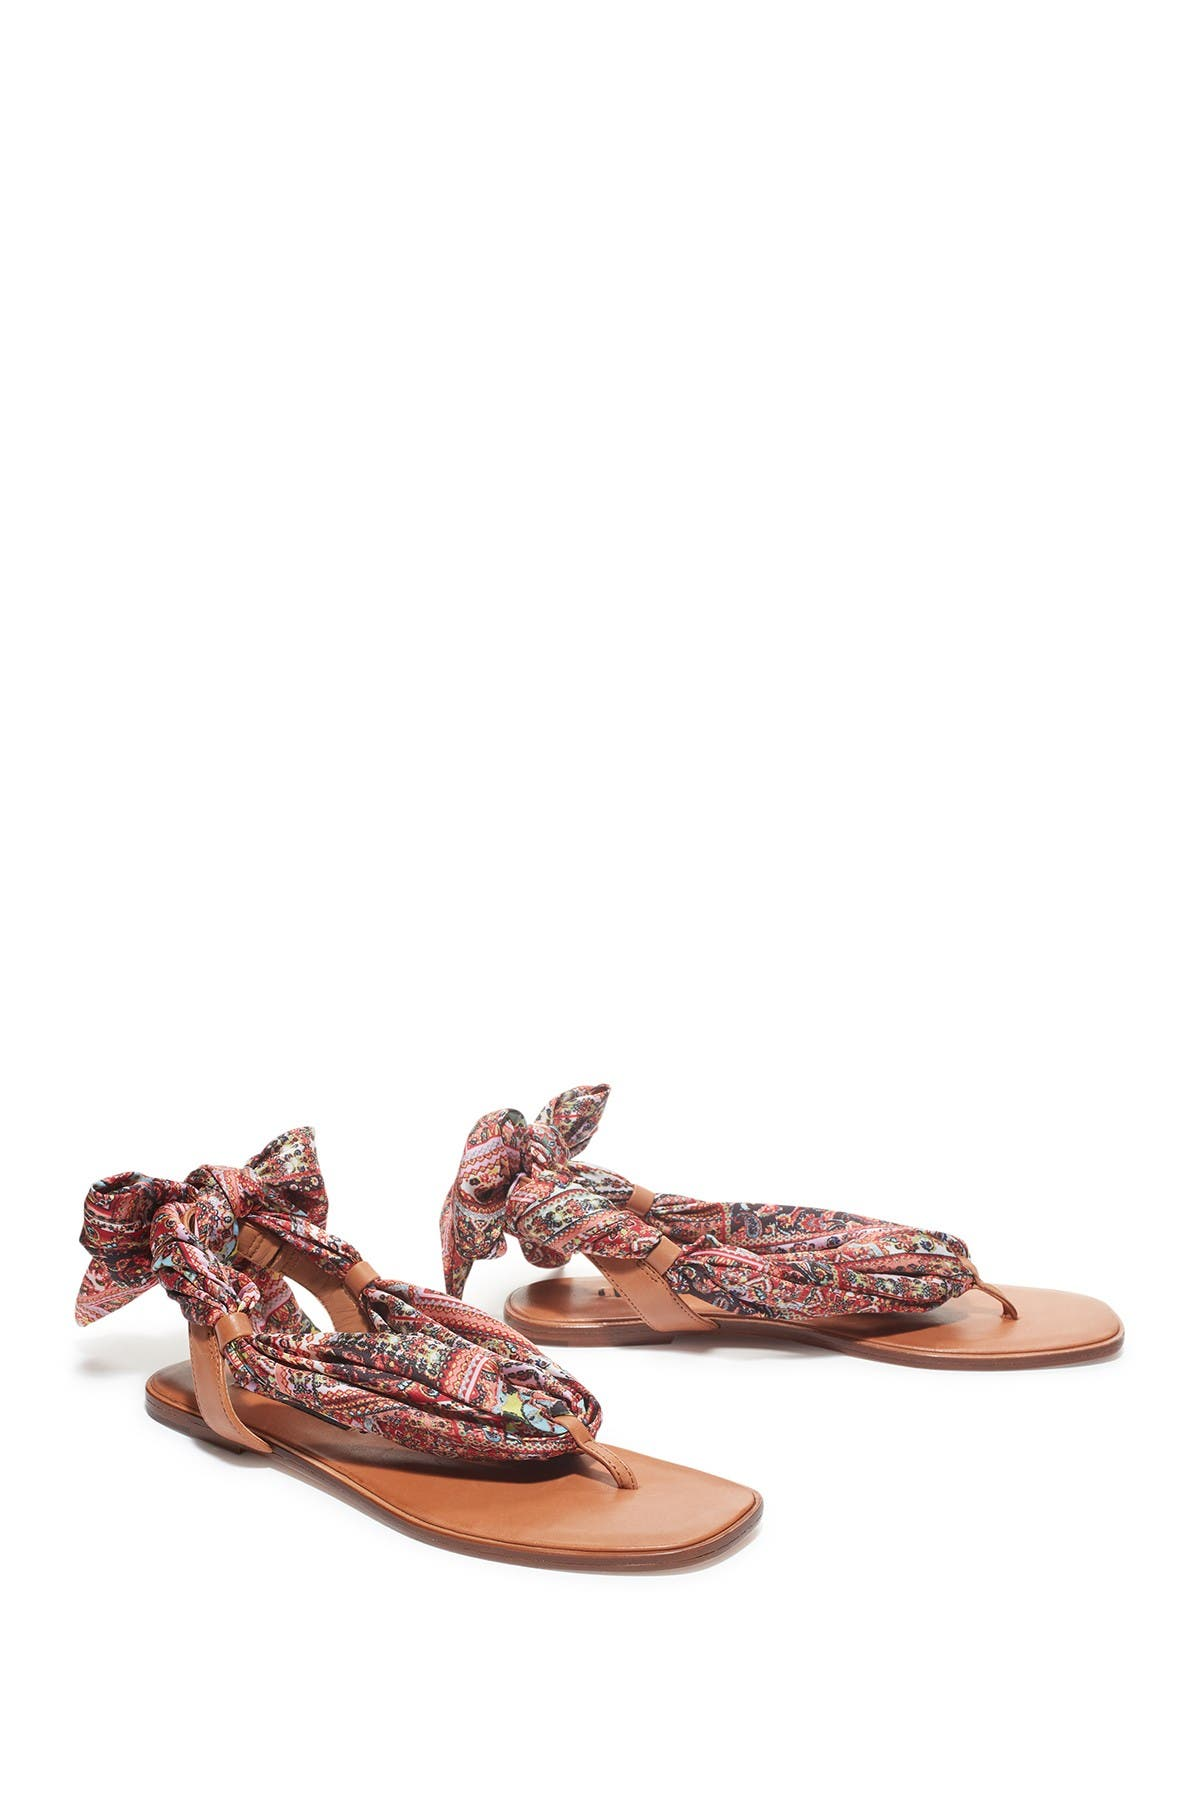 Image of alice + olivia Caliea Printed Wrap Sandal